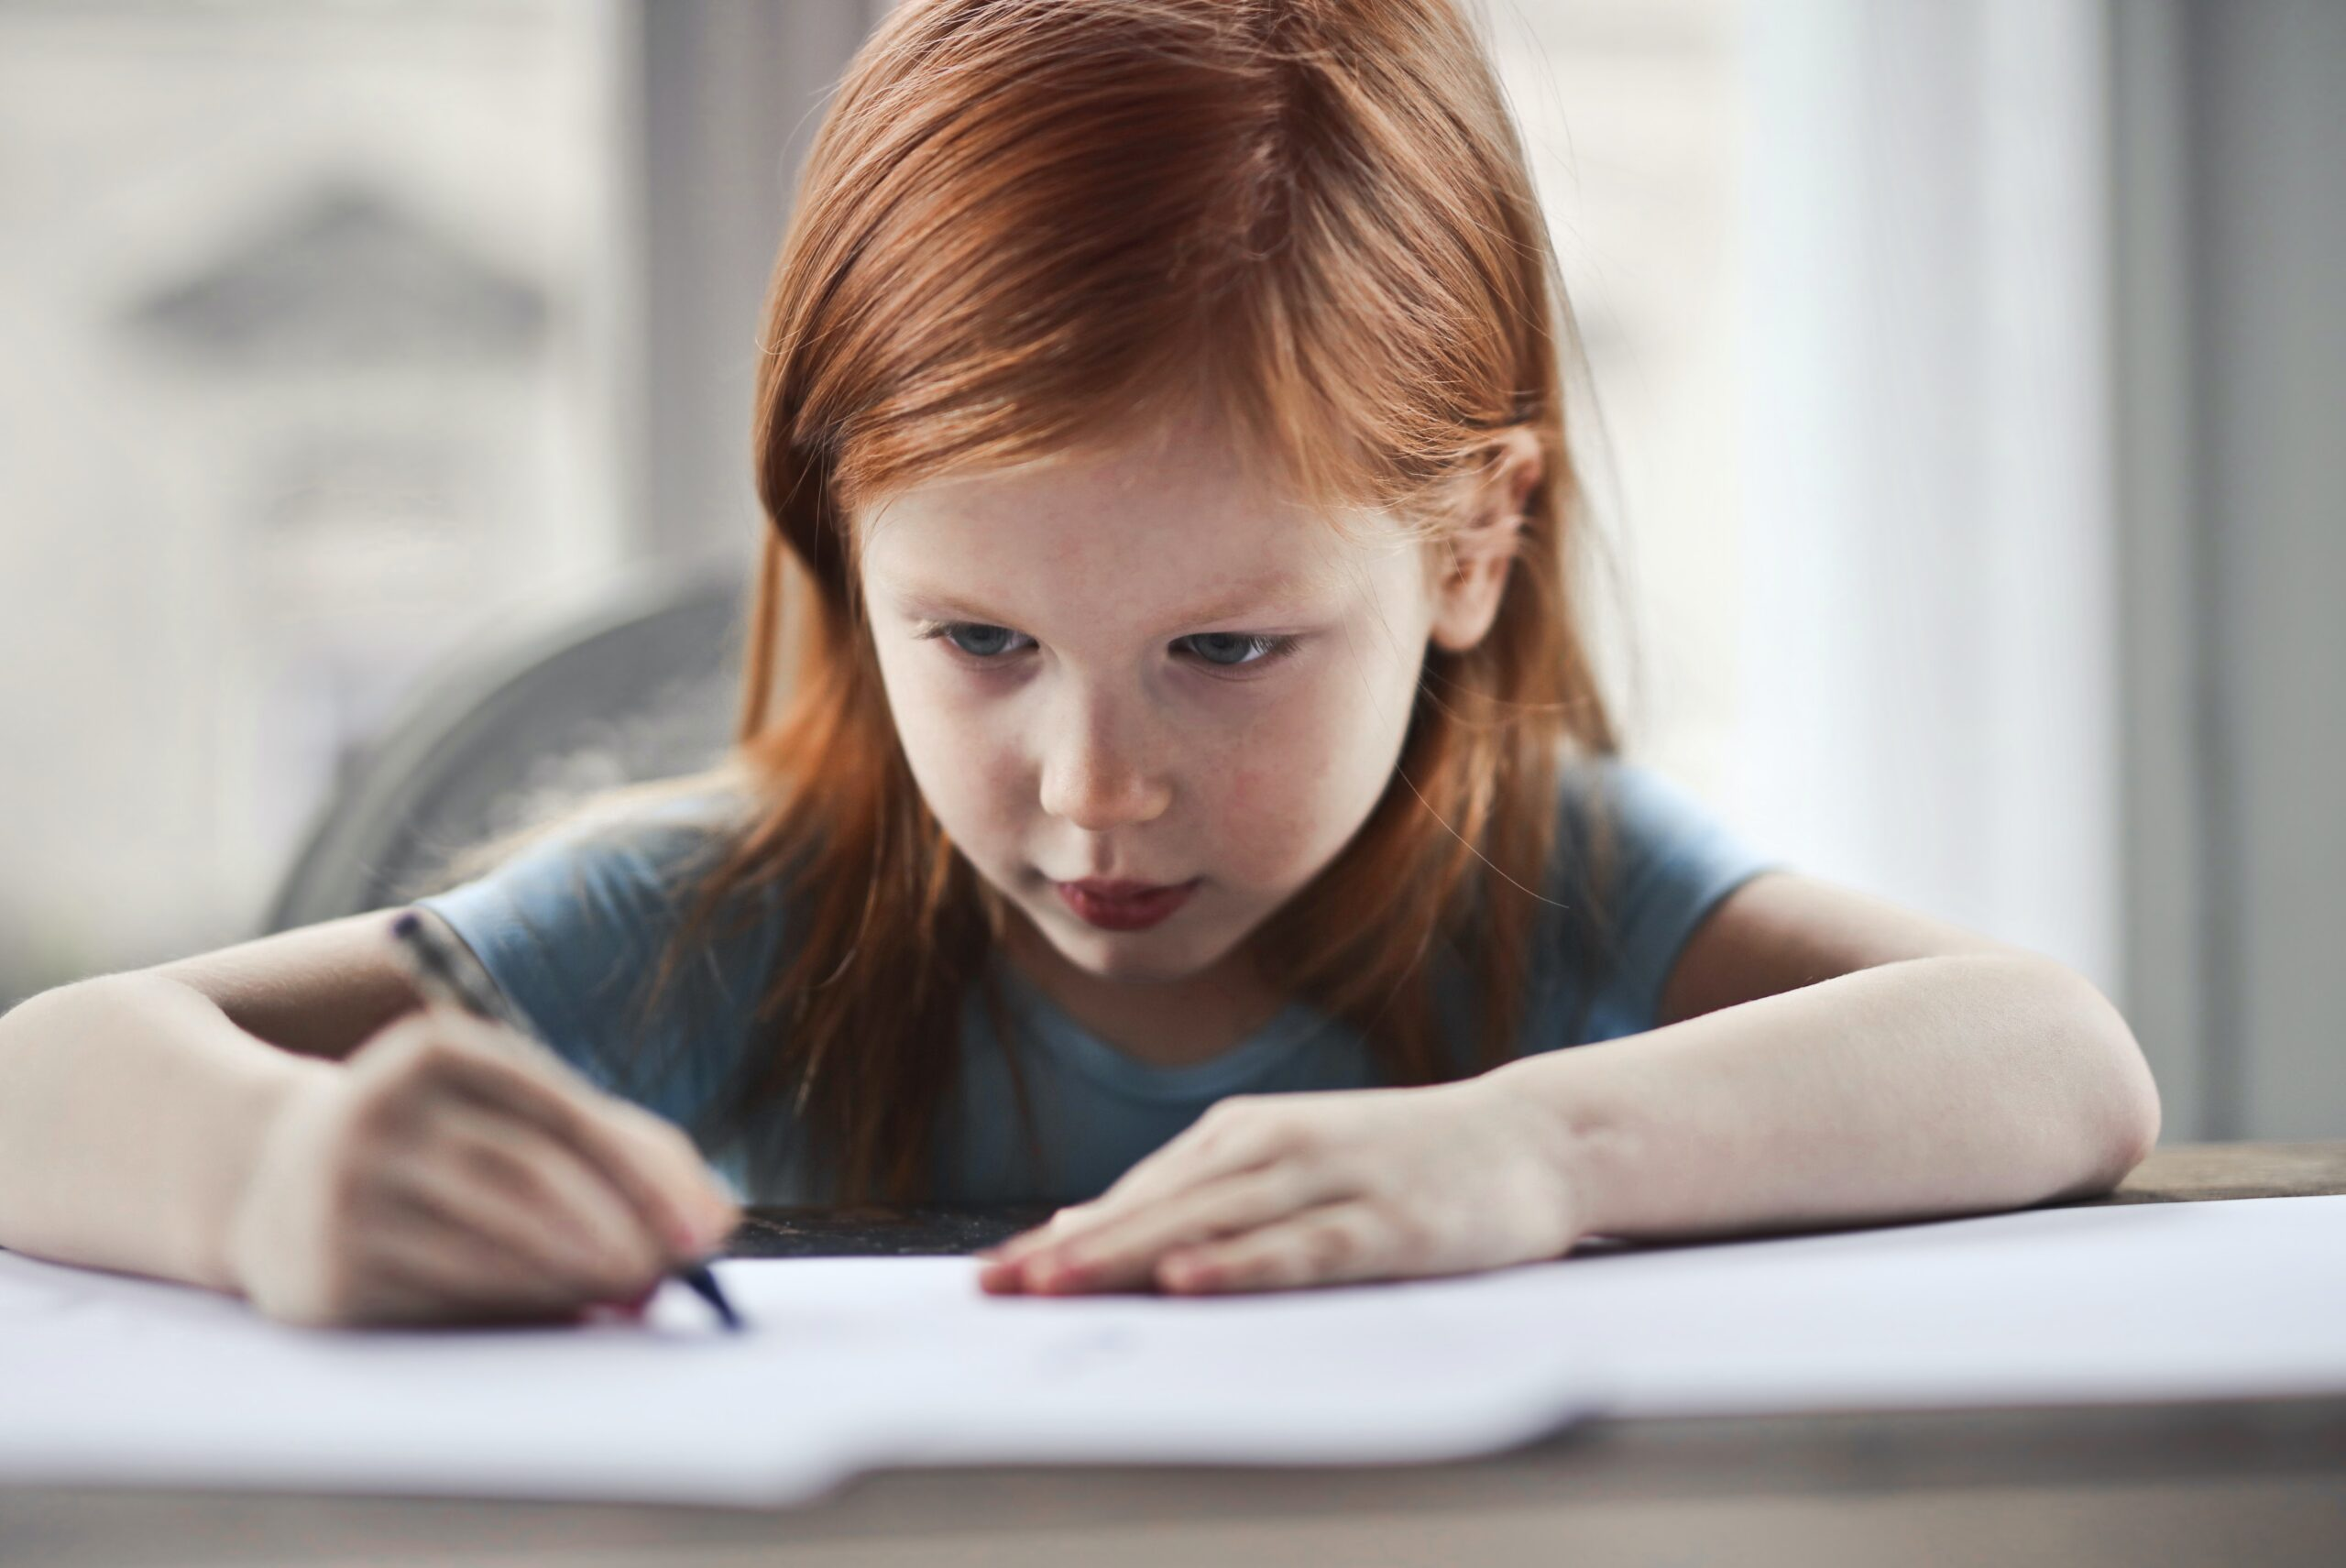 Little girl with red hair sitting alone writing in a book